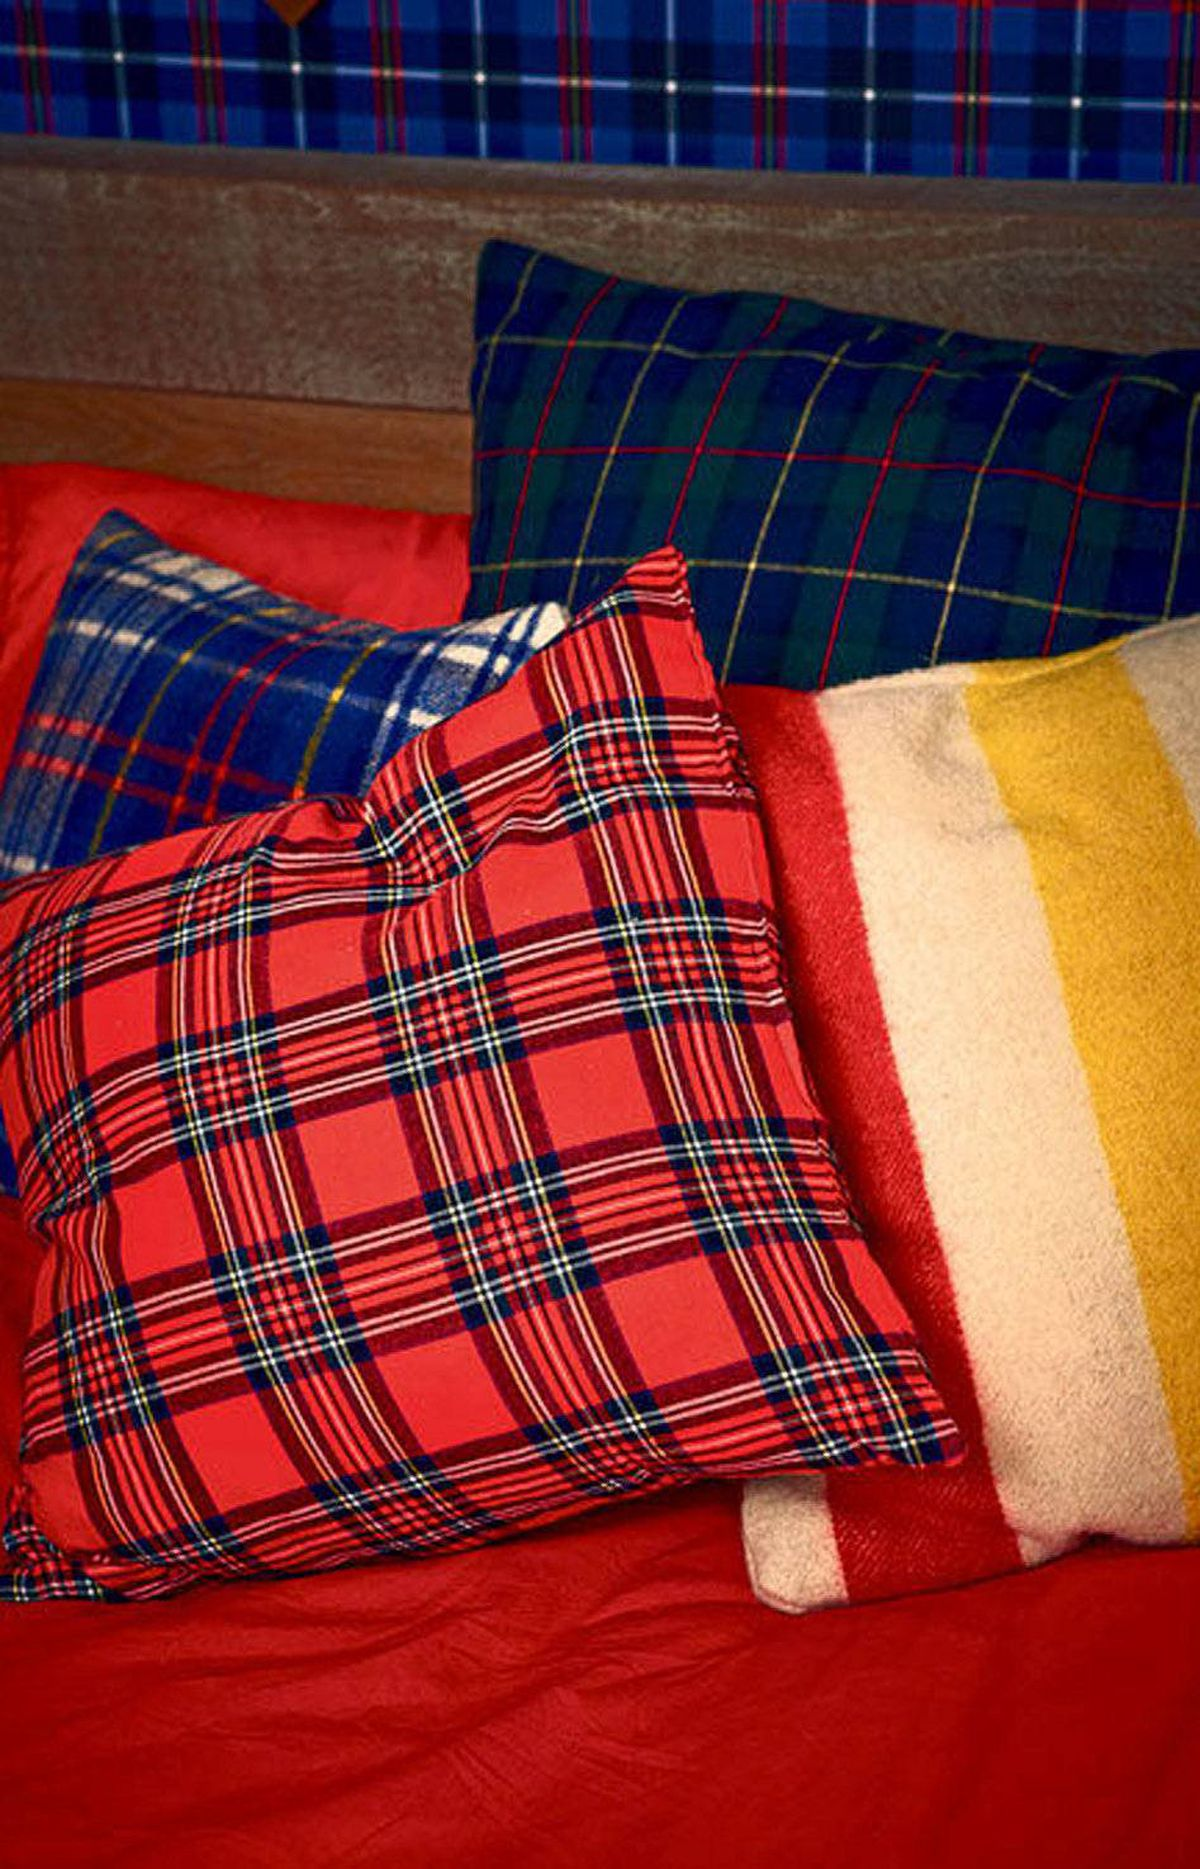 Foelske used tartans in contrasting colours to create an array of large throw pillows.